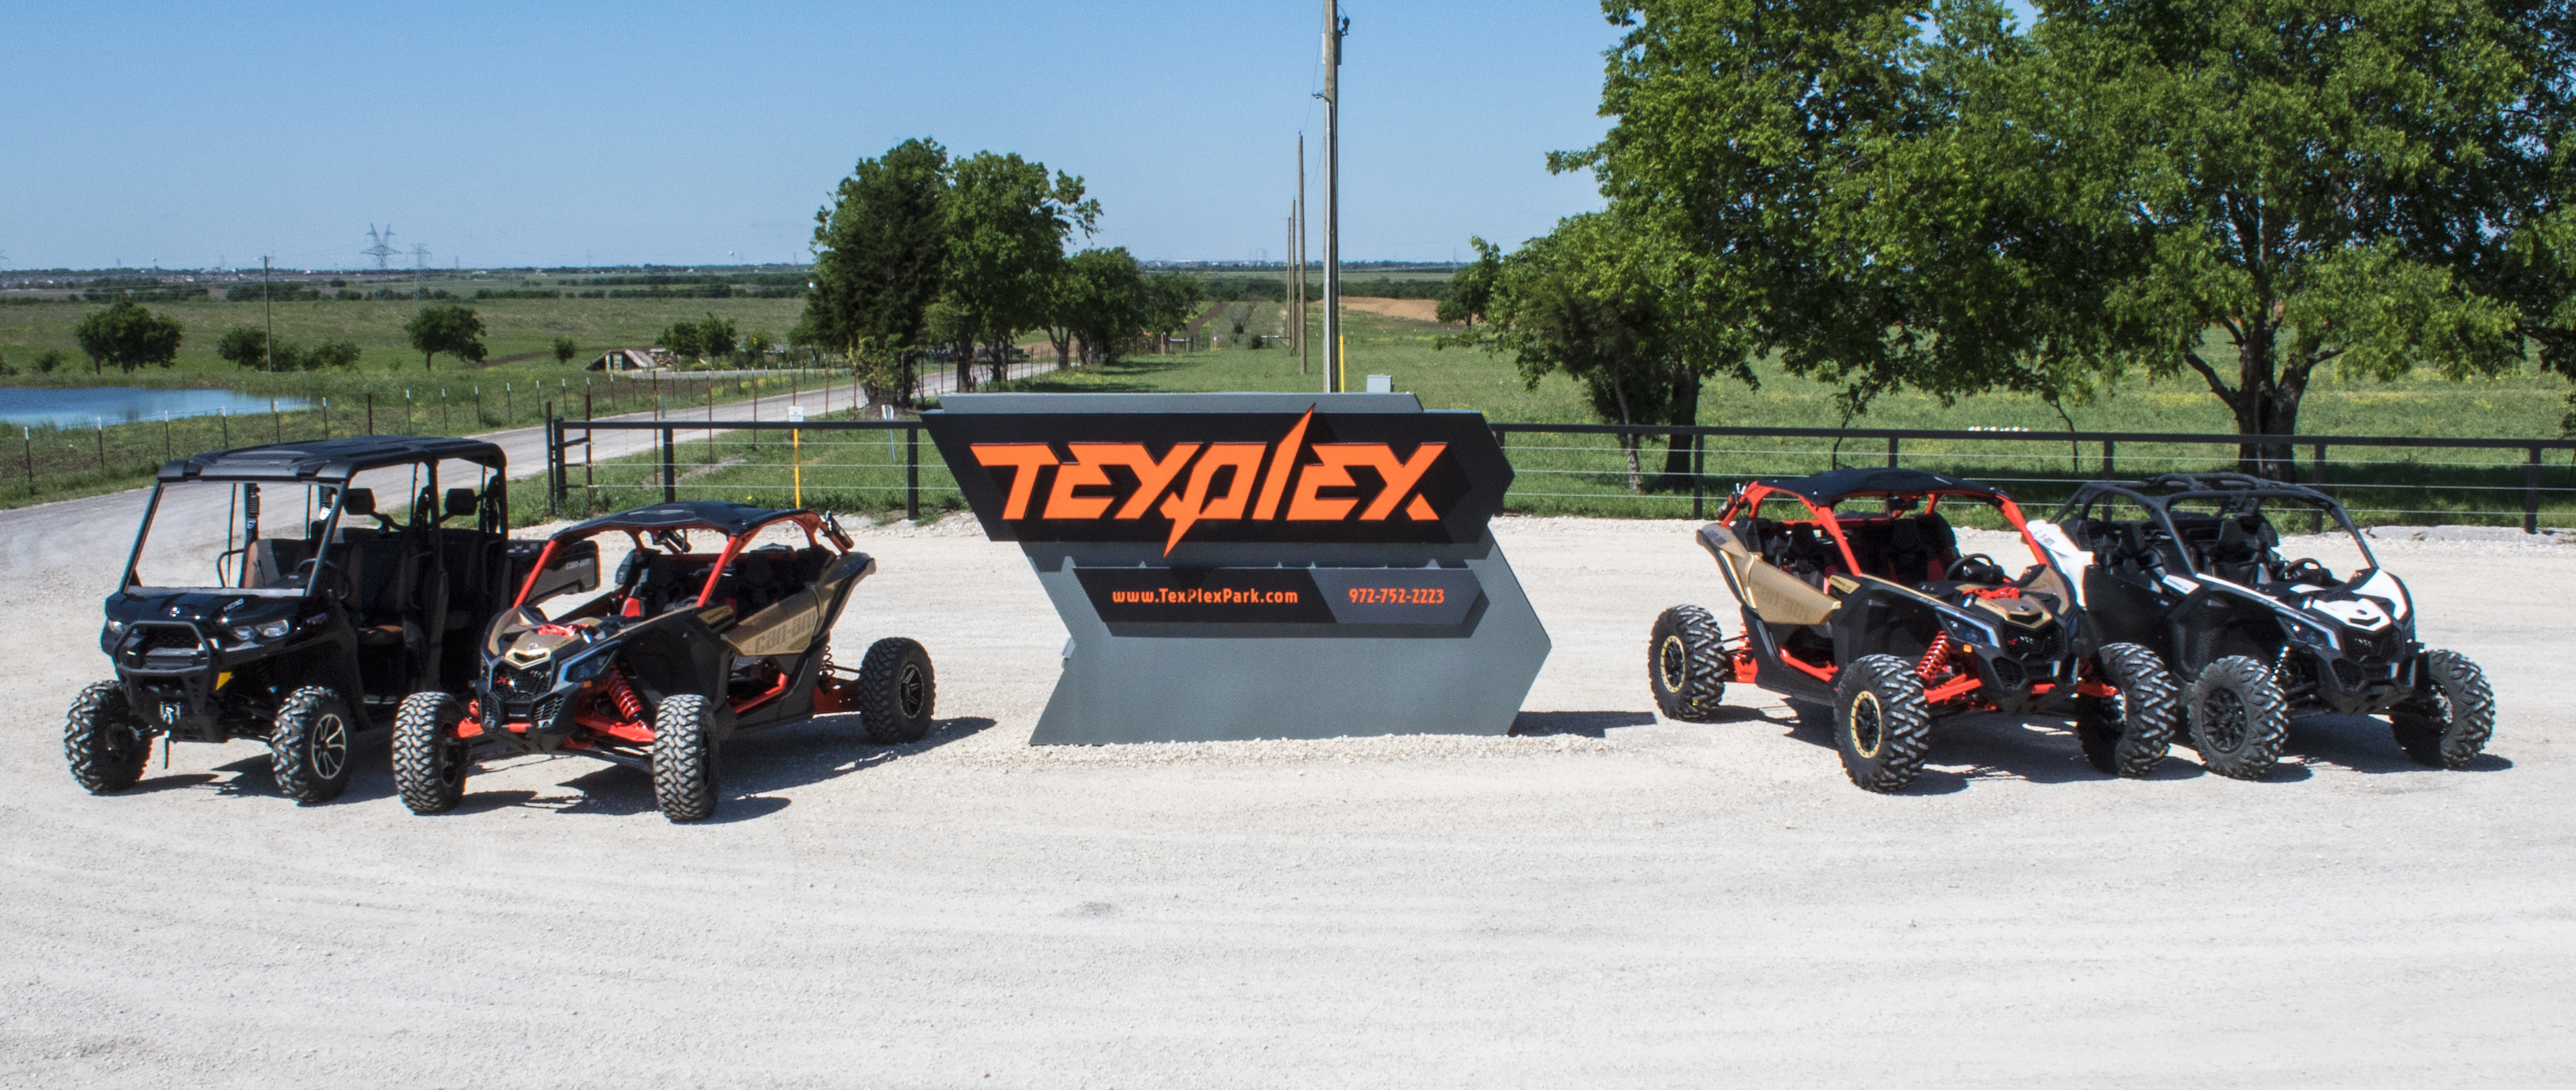 TexPlex Park and Can-Am to Create First Permanent Demo Facility